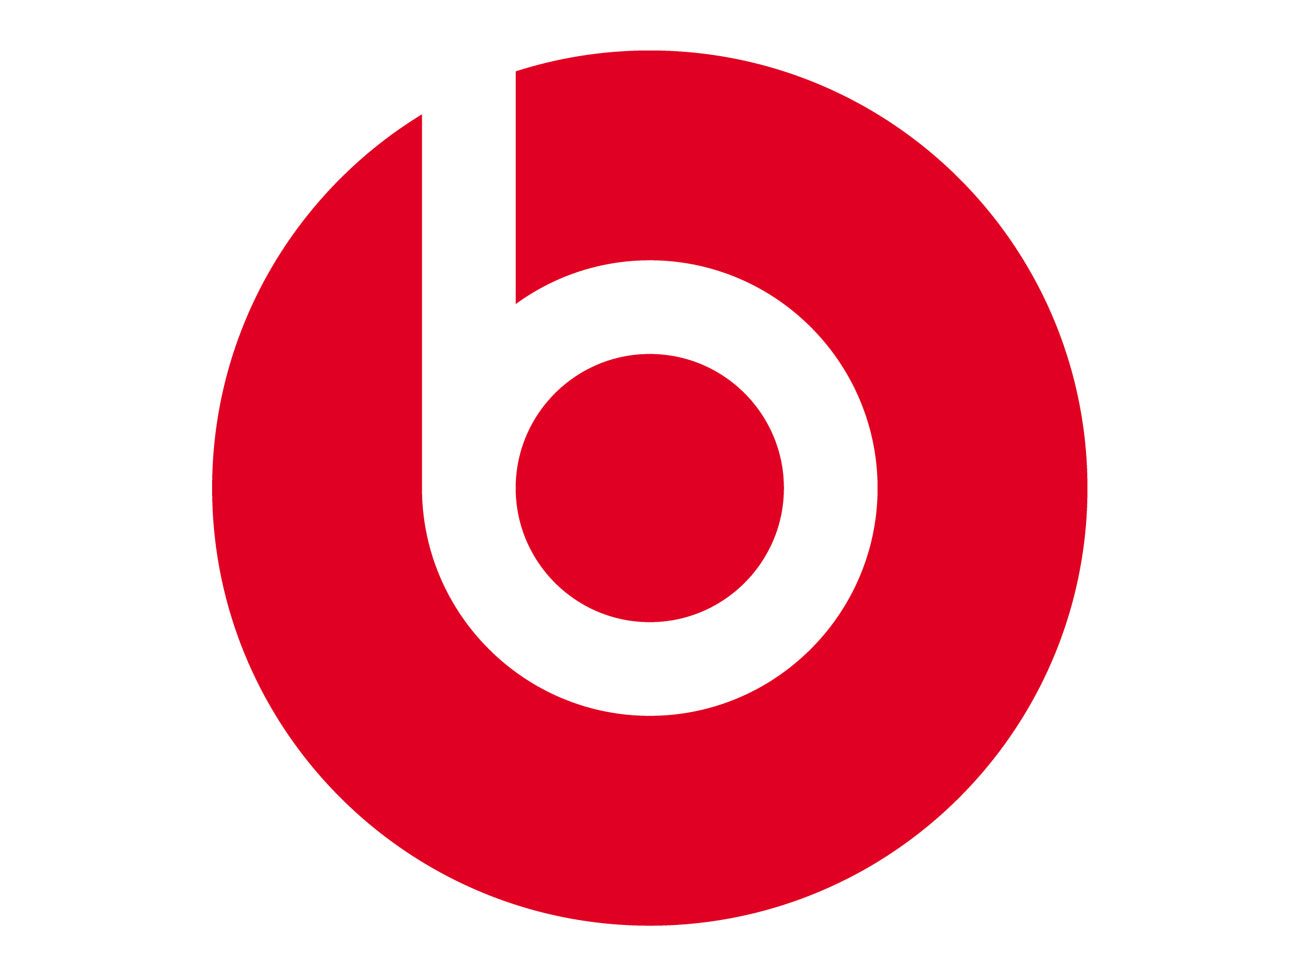 6 of the most magnificently minimal logos: Beats